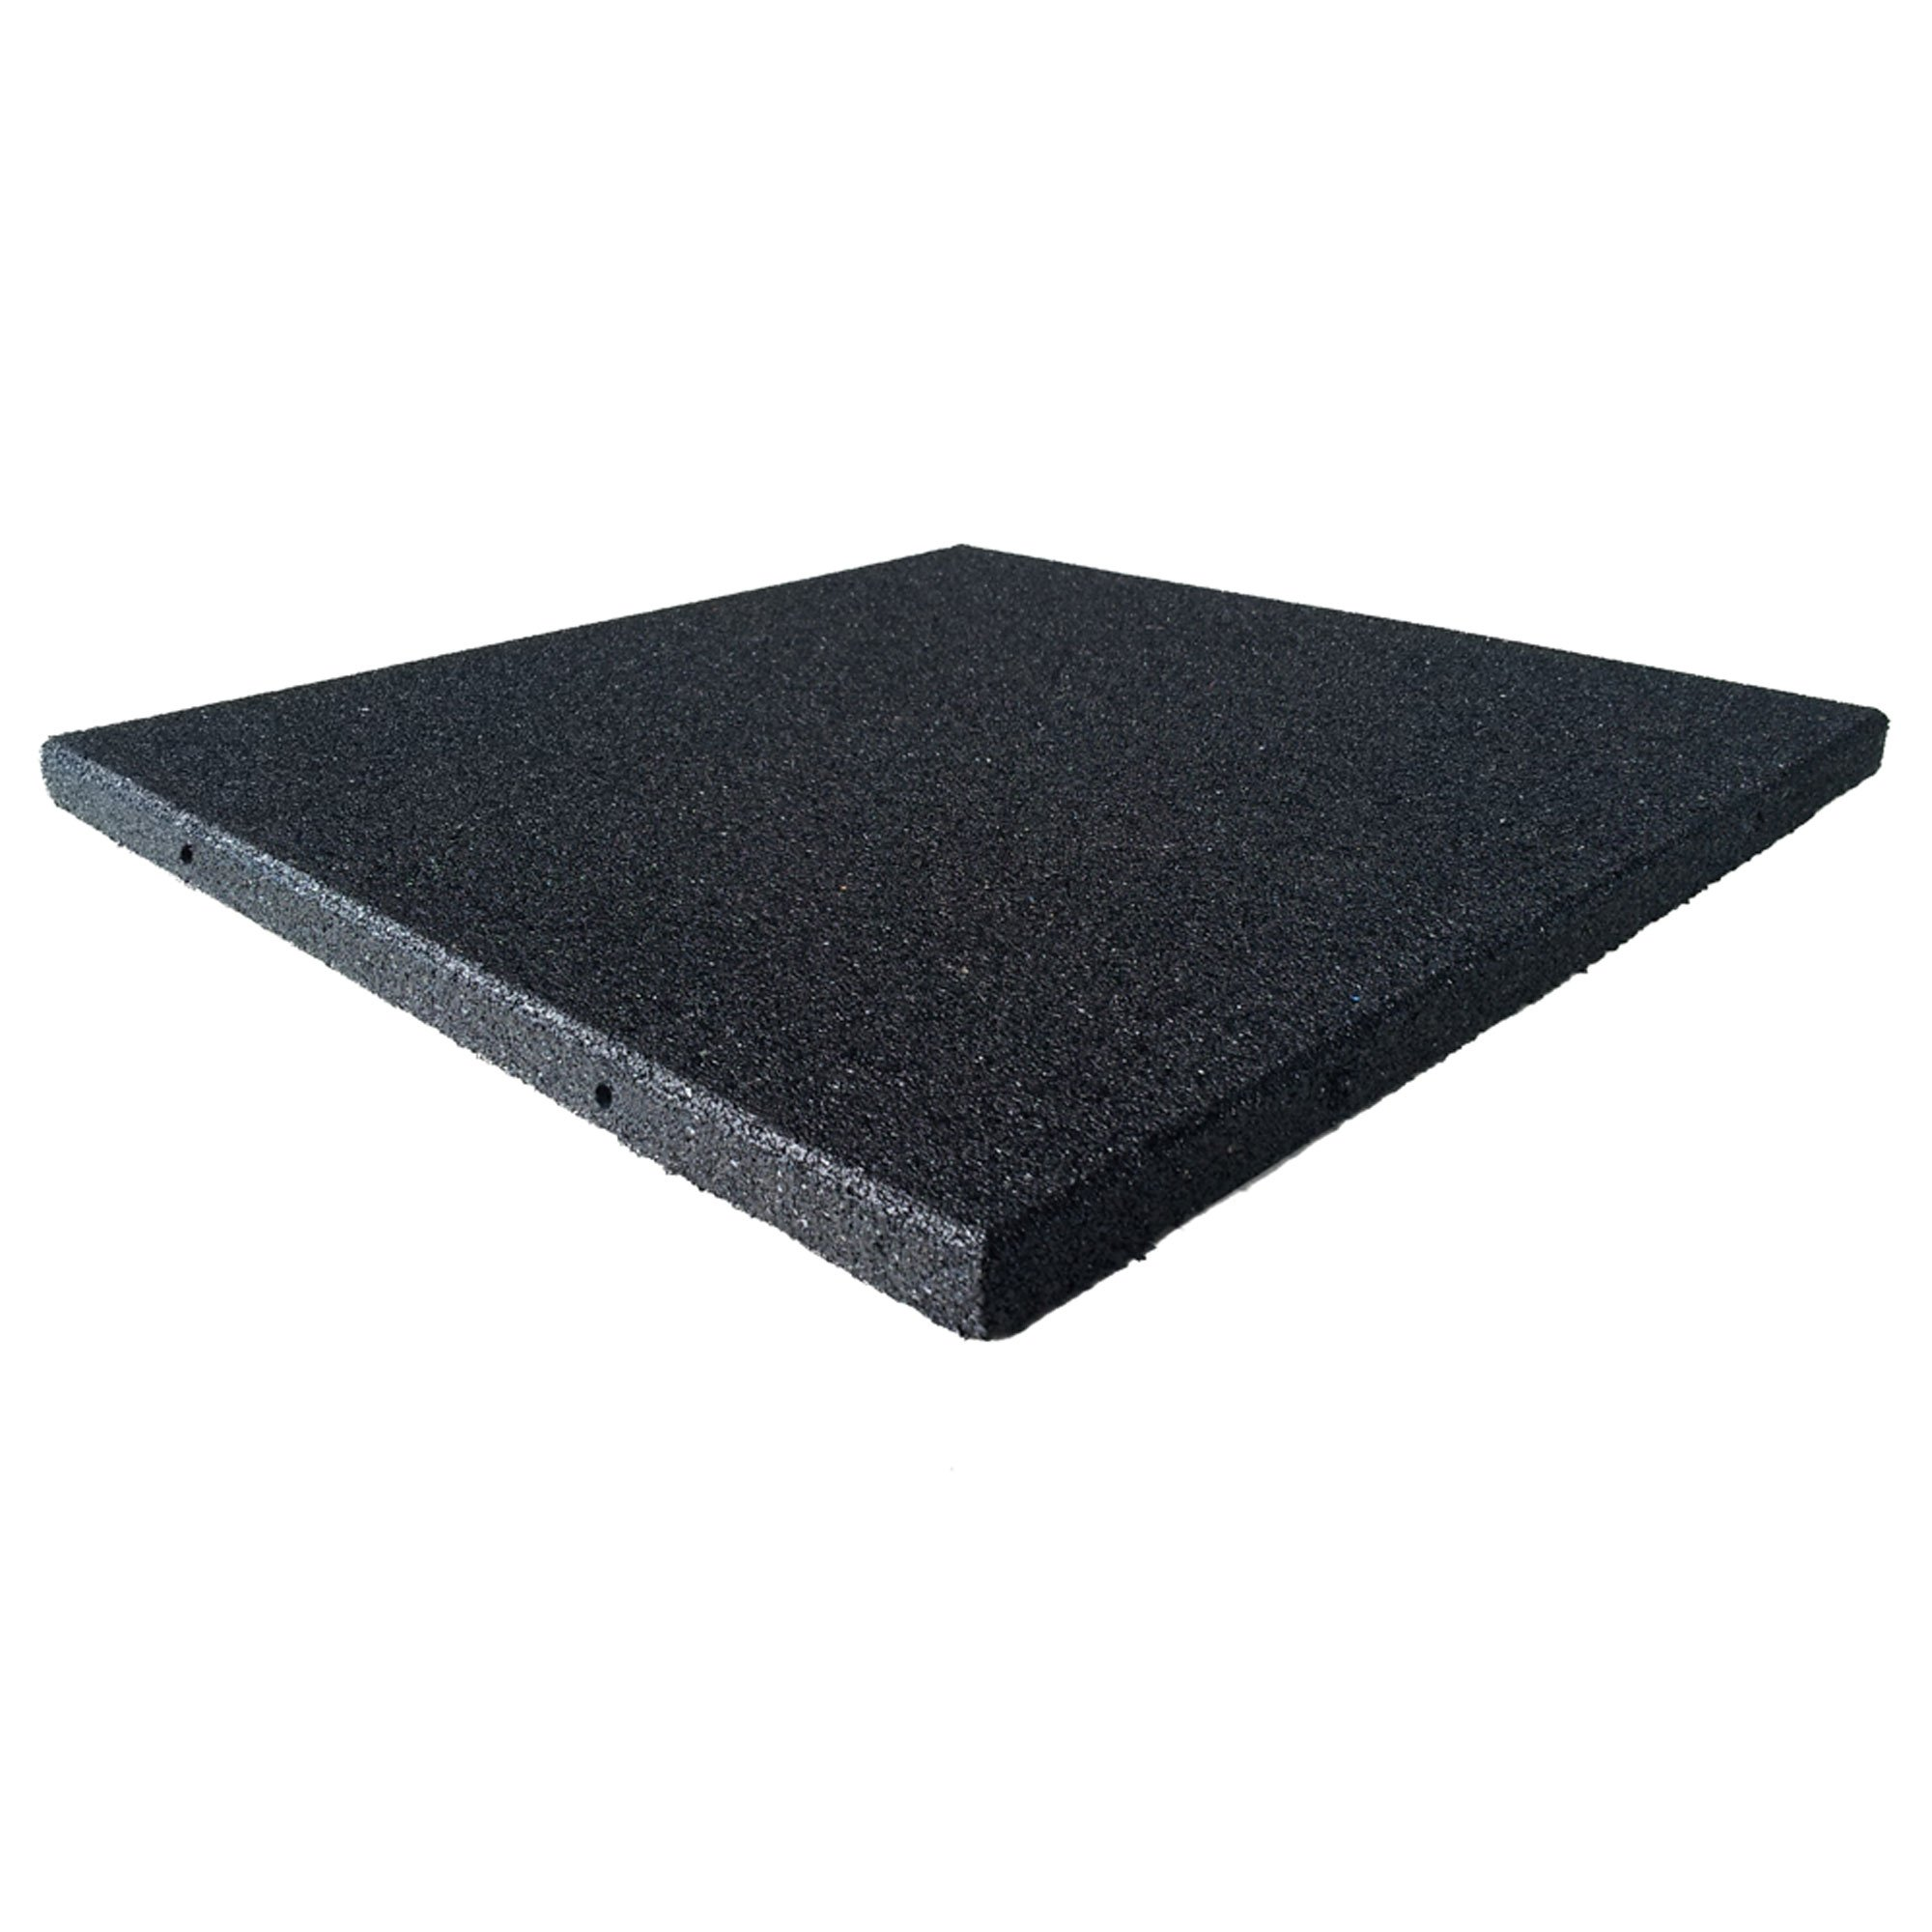 Rubber-Cal Eco-Sport Floor Tile-Pack of 3, Coal, 1 x 20 x 20-Inch